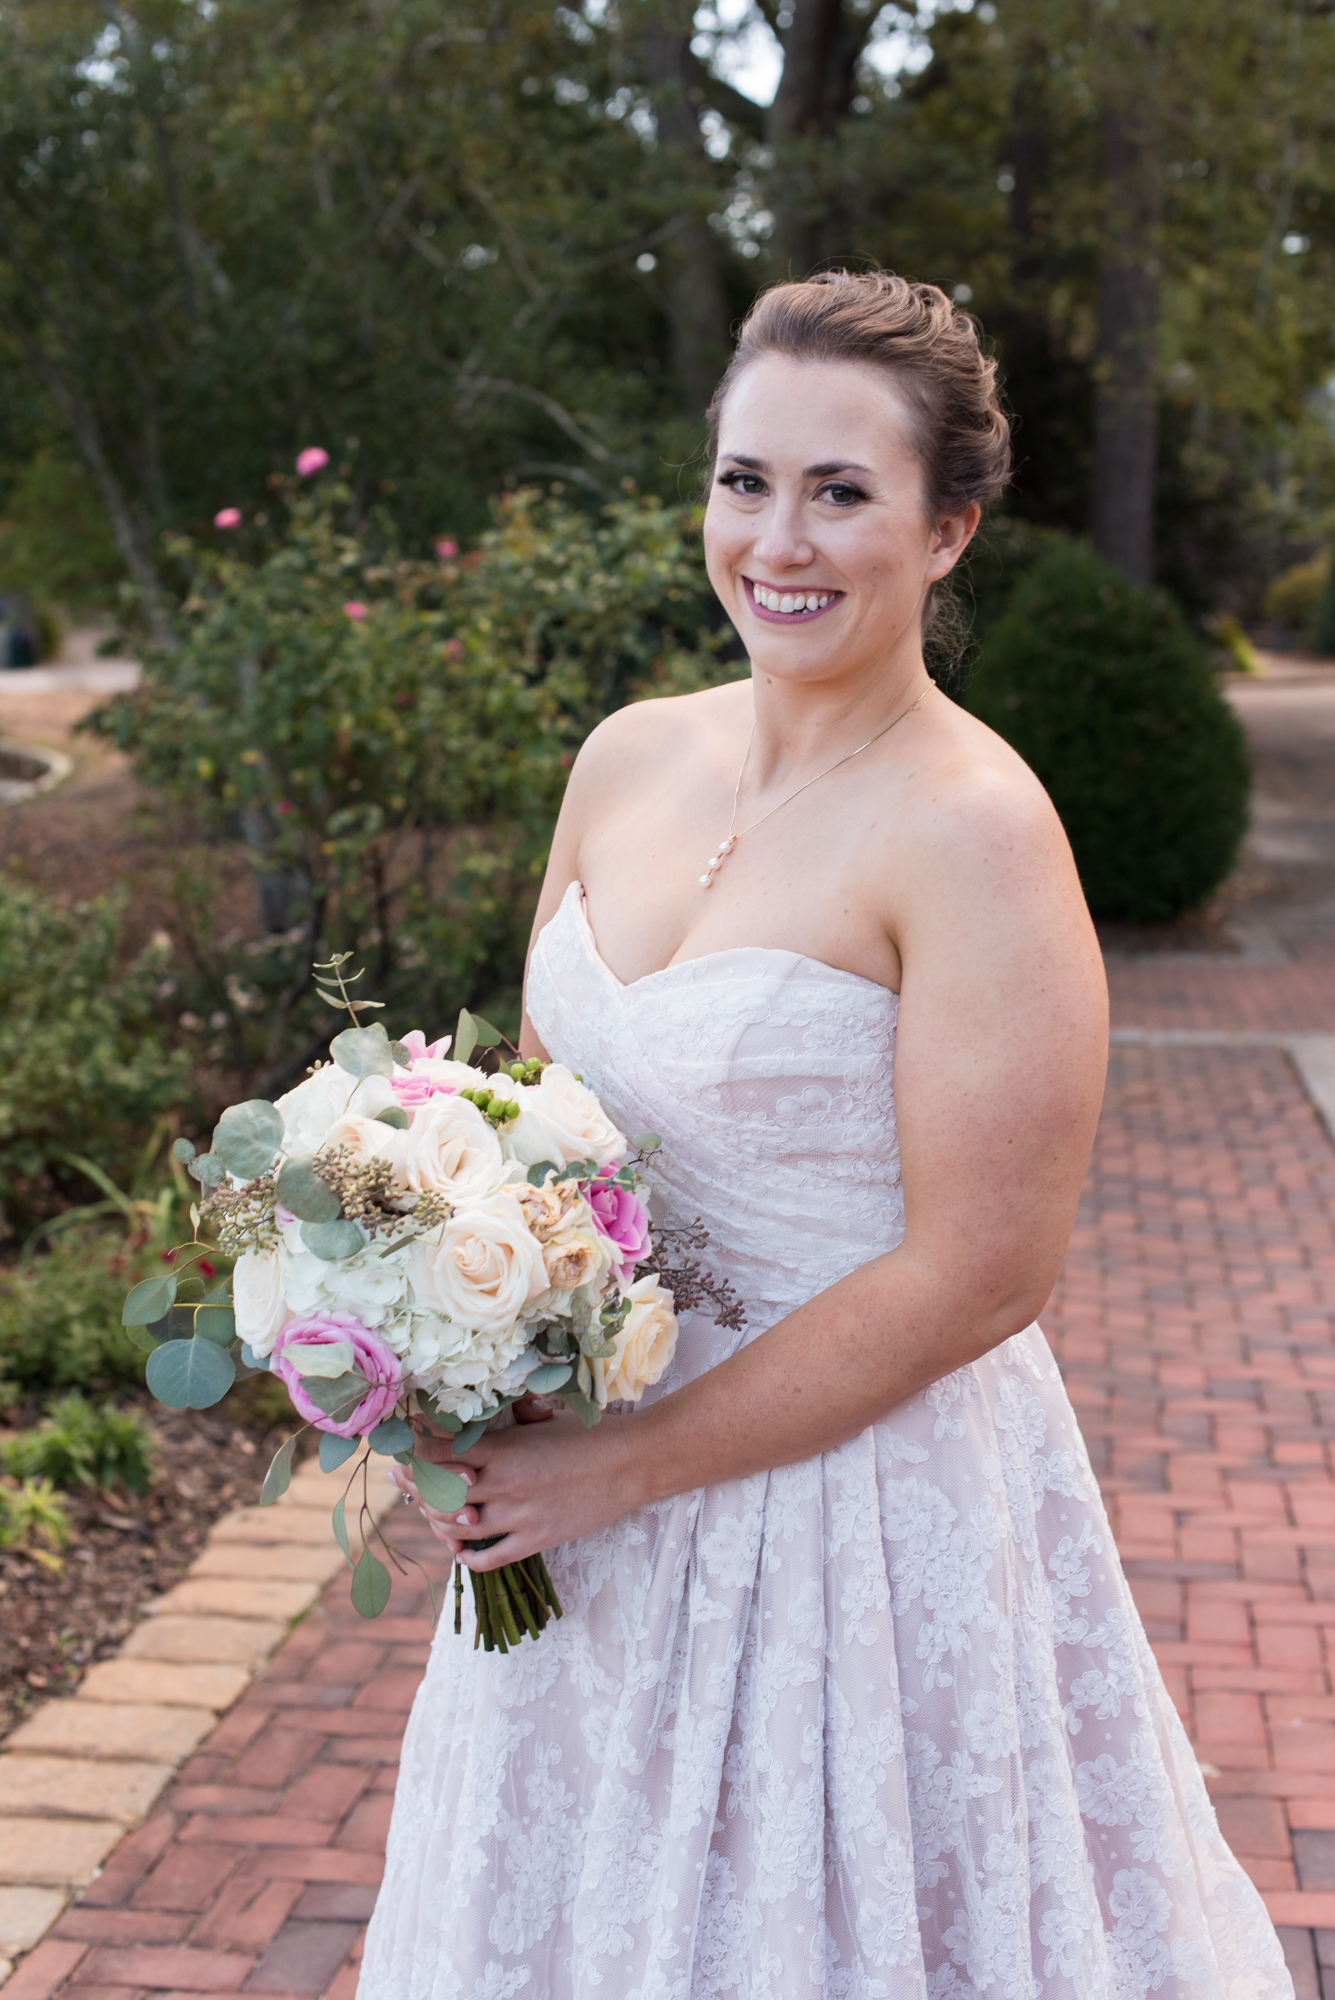 White and Pink Bridal Bouquet - Lace Wedding Dress - Travel Themed Wedding - Caitlin Gerres Photography